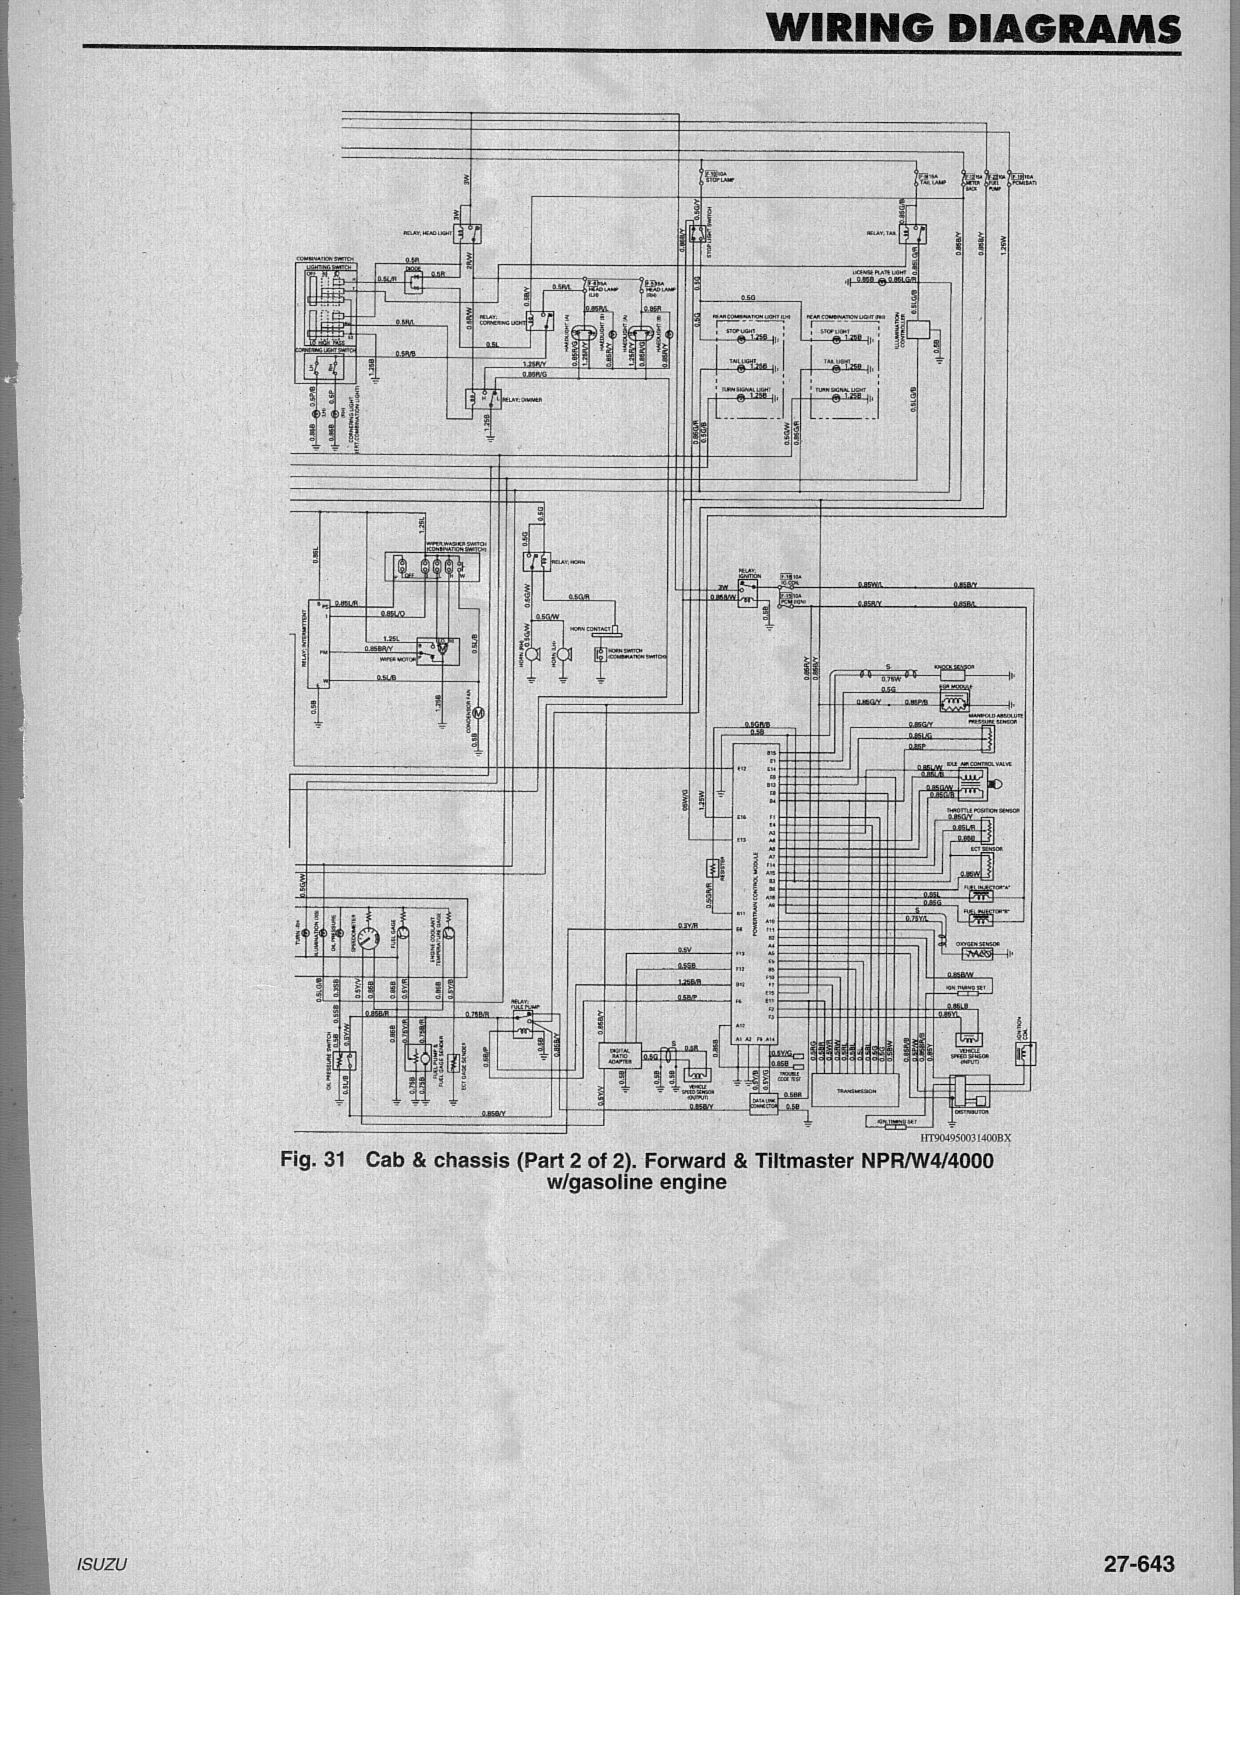 1993 Chey S 10 Headlight Wiring Diagram Diagram] 1993 isuzu Npr Wiring Diagram Full Version Hd Of 1993 Chey S 10 Headlight Wiring Diagram